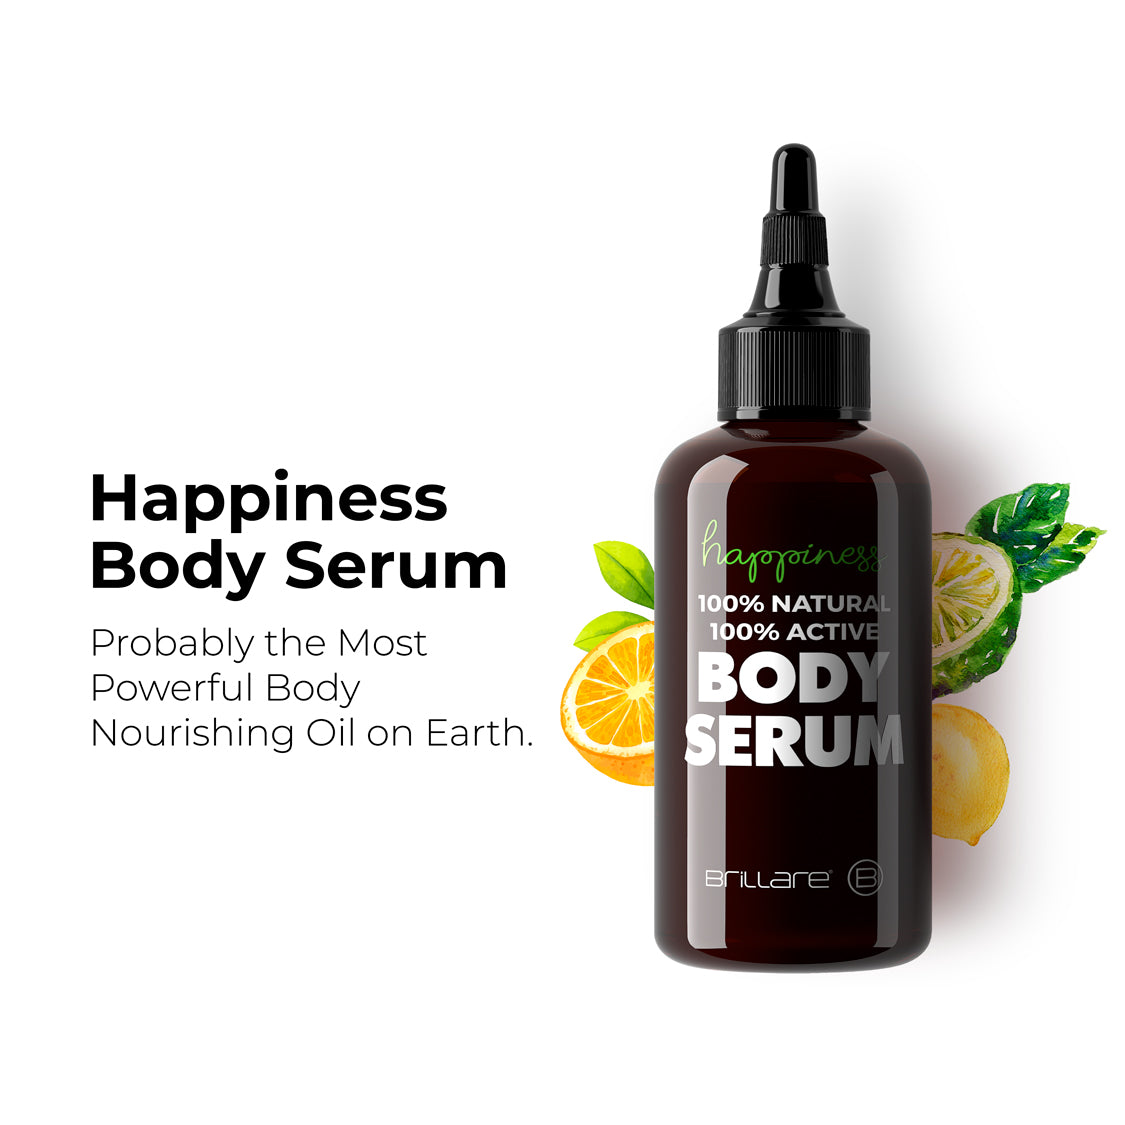 Happiness Body Serum For Healthiest Skin